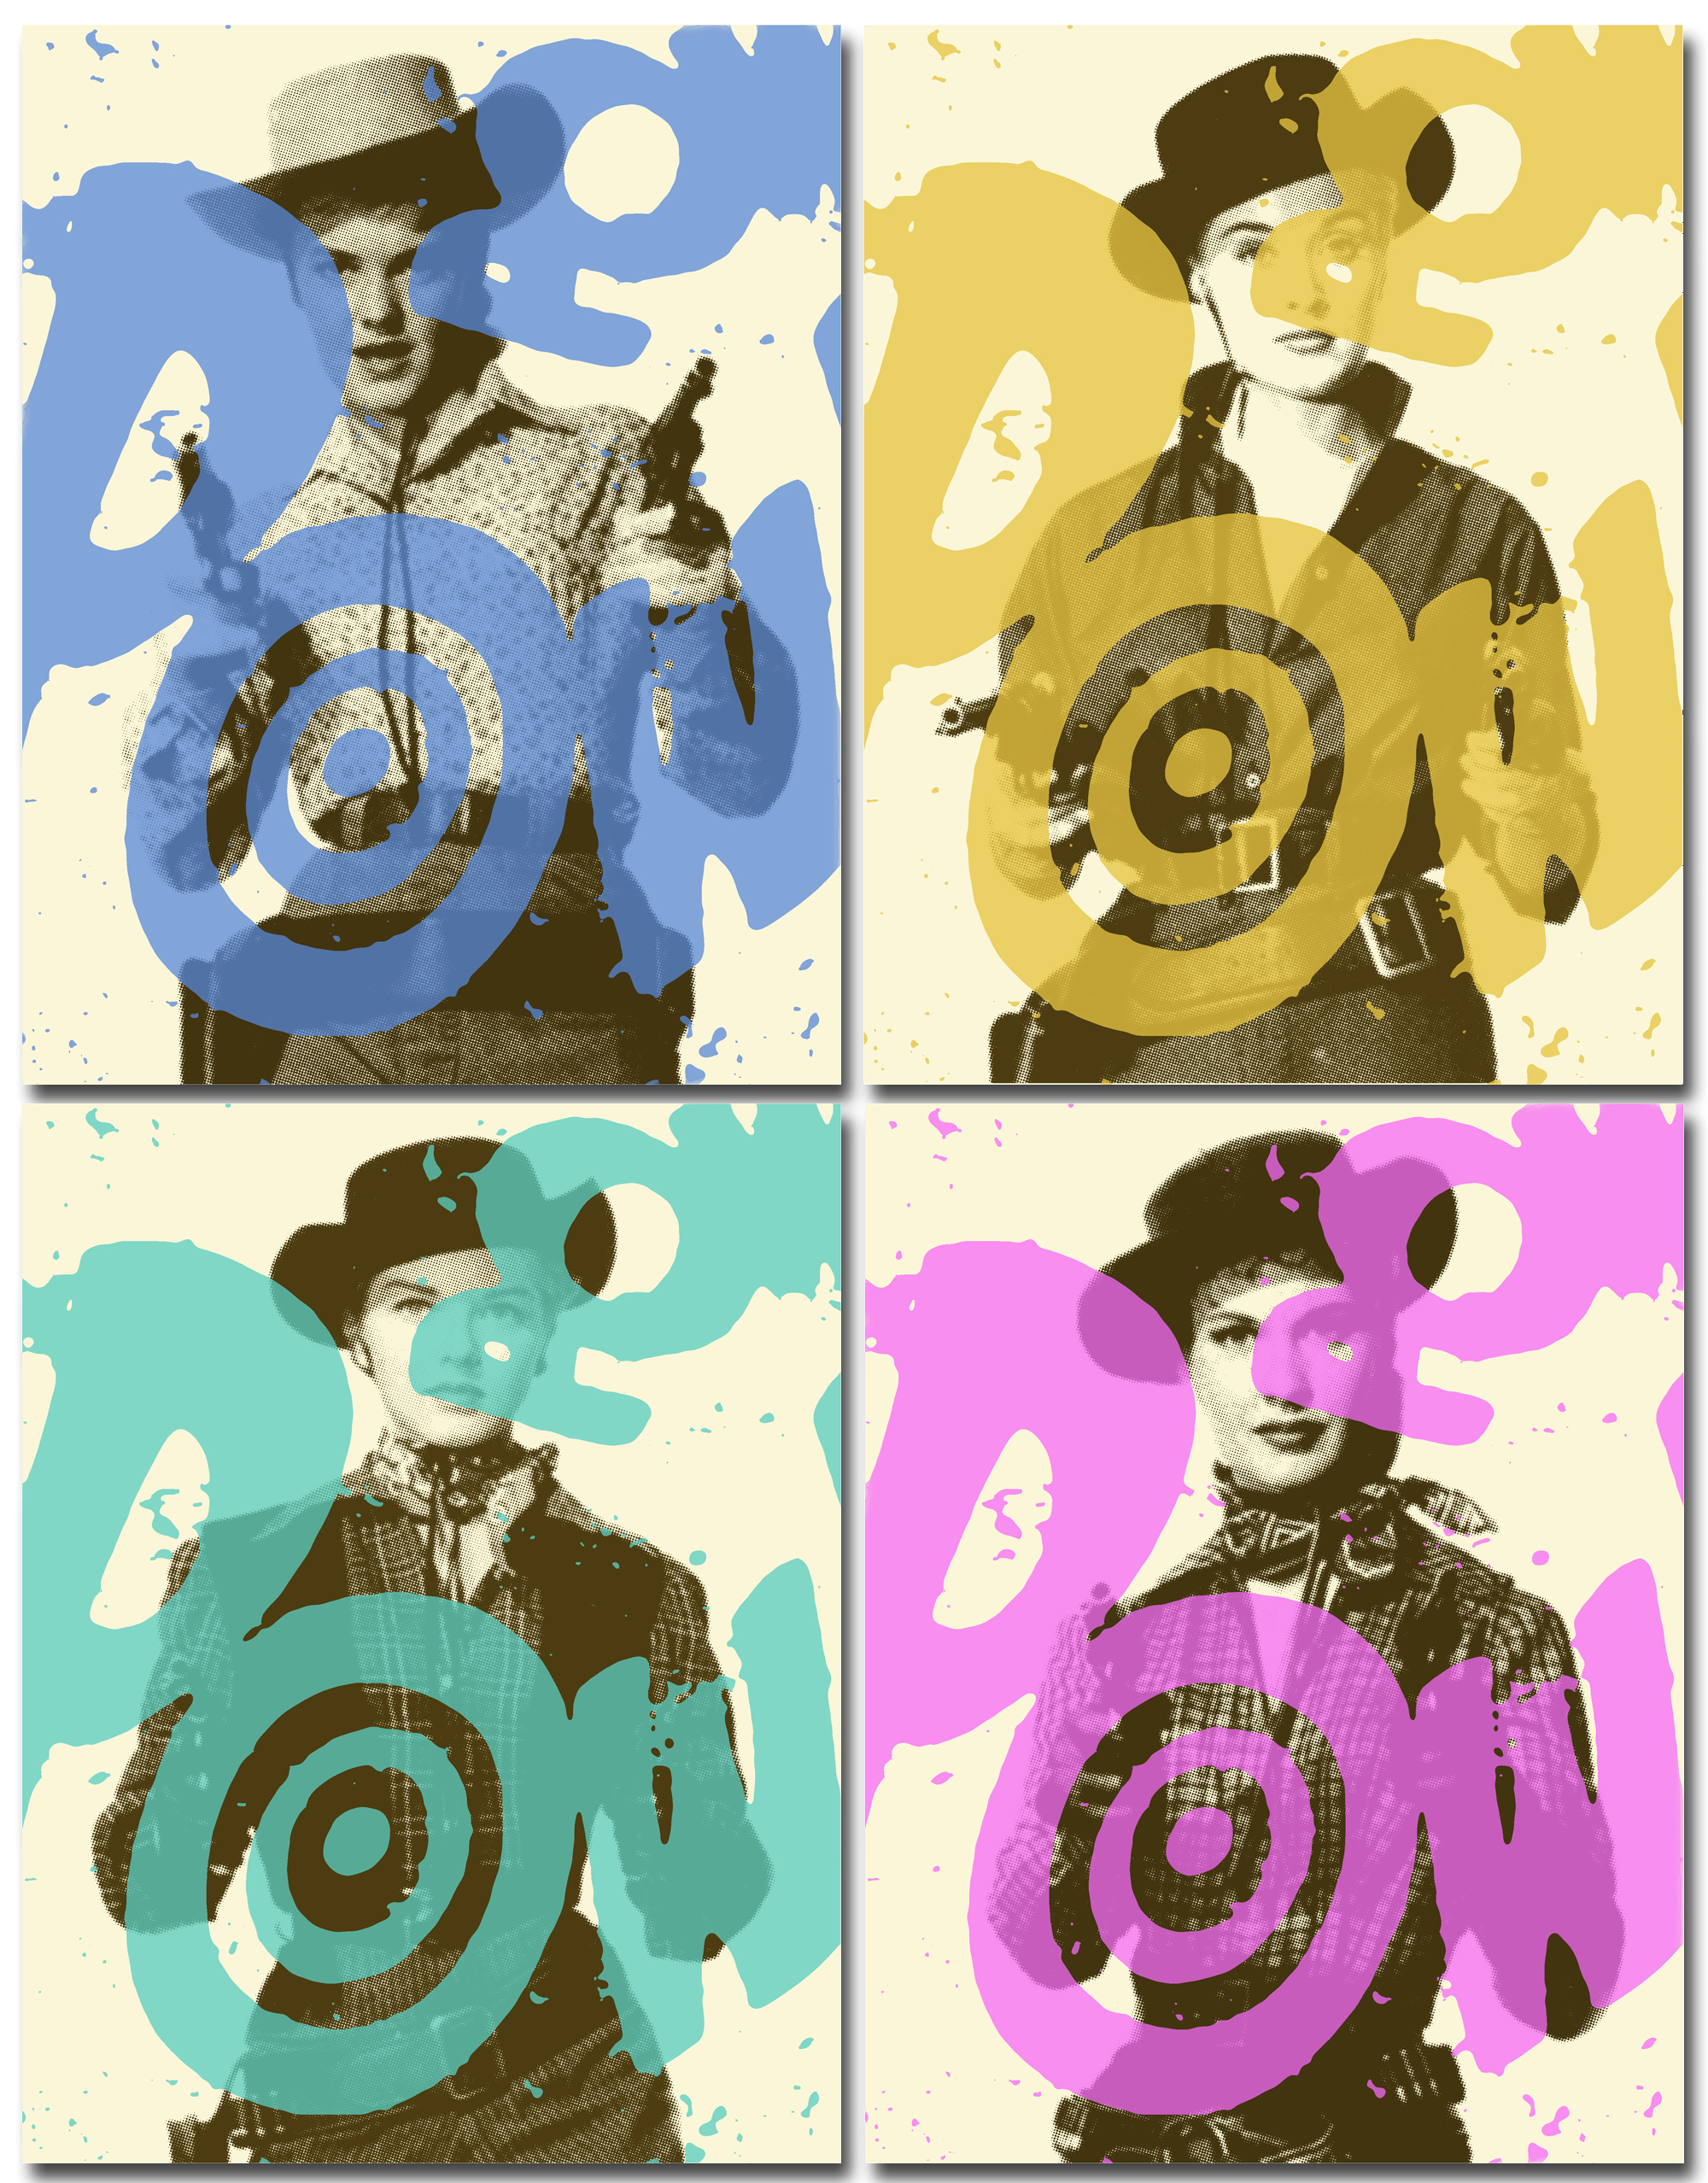 COWGIRLS print set by Zane Thomas!